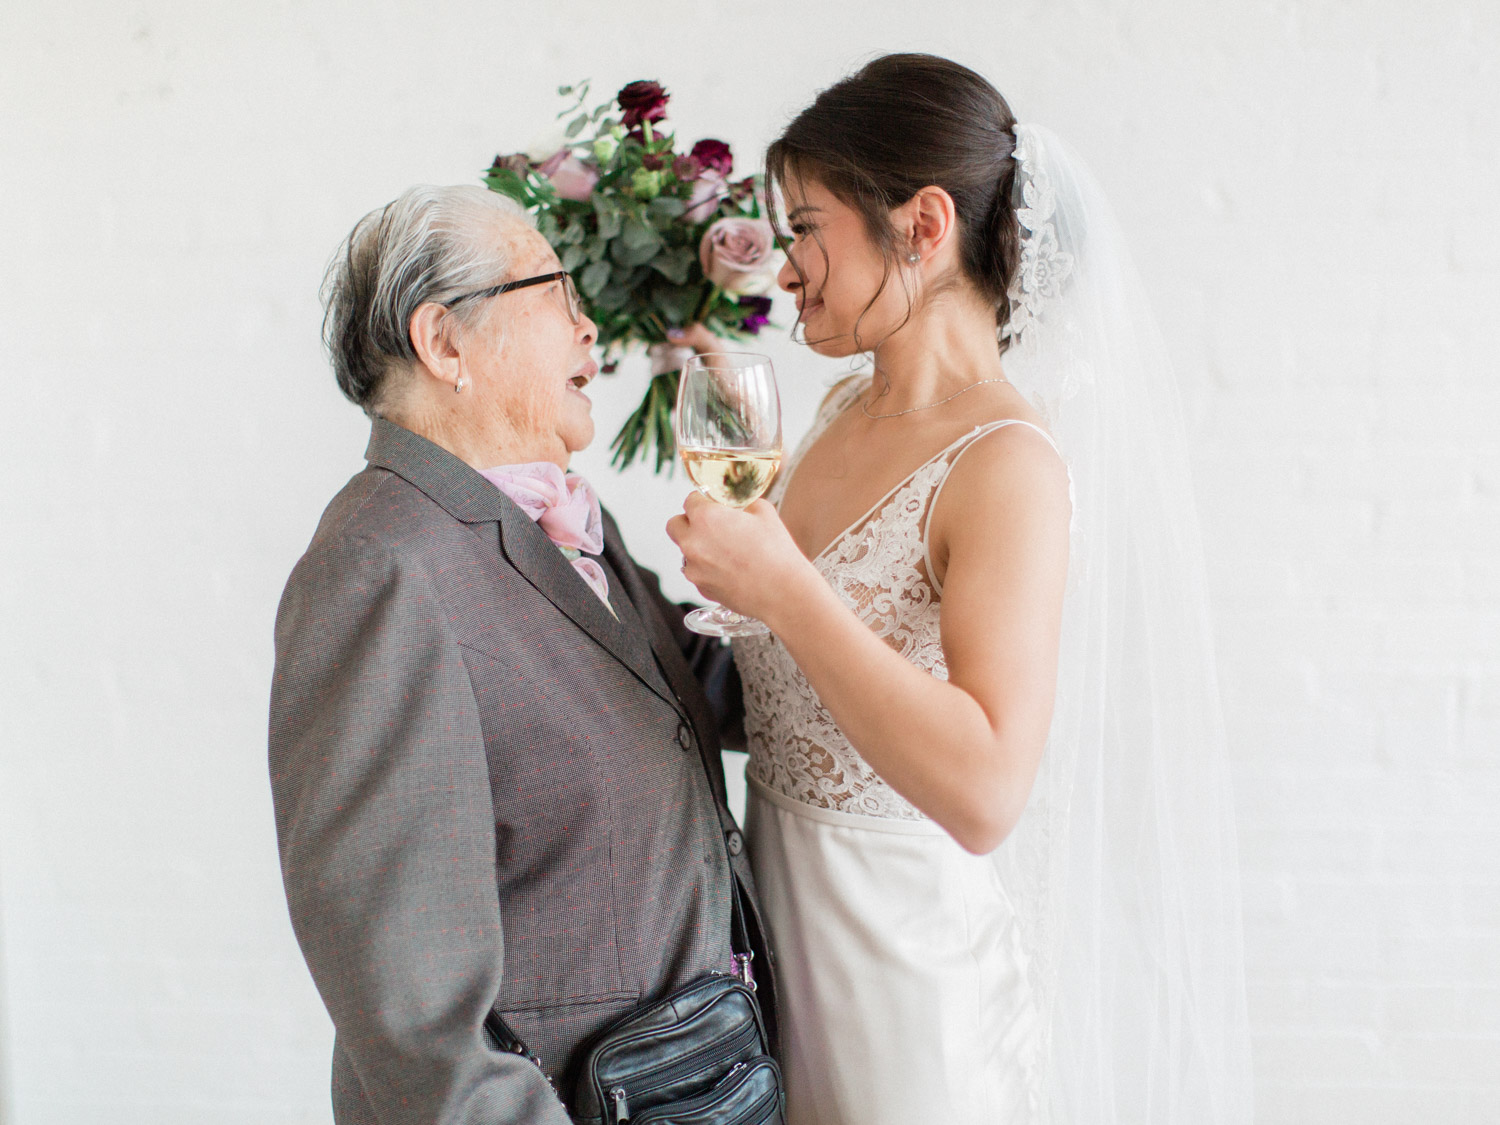 Candid emotional wedding photograph of the bride and her grandmother. Captured by Toronto wedding photographer Corynn Fowler Photography